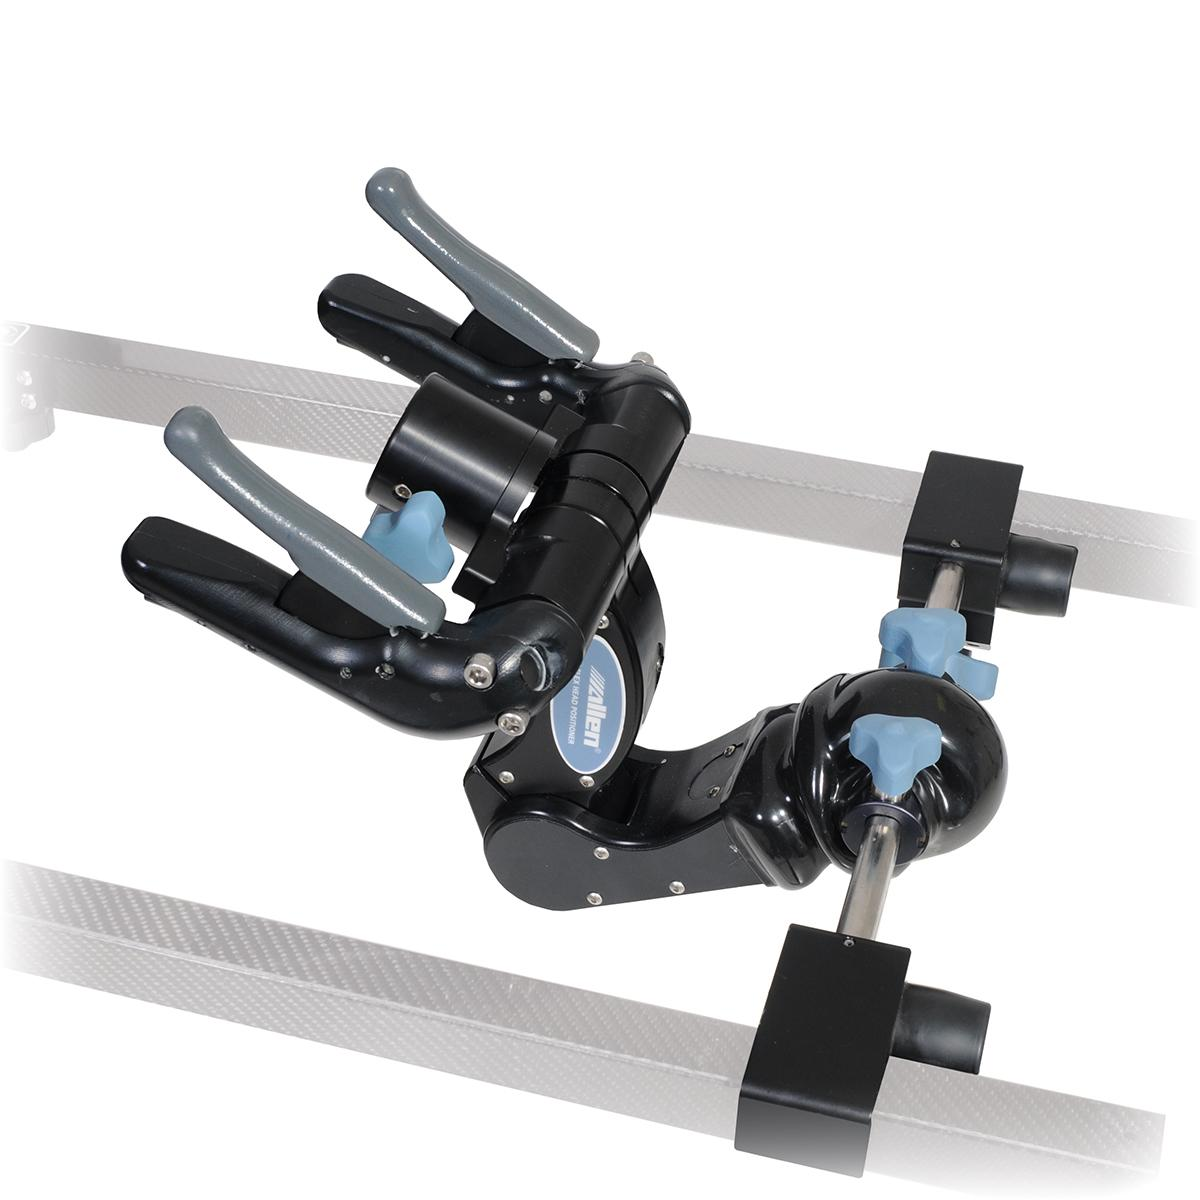 C-Flex Head Positioning System in use with patient prone